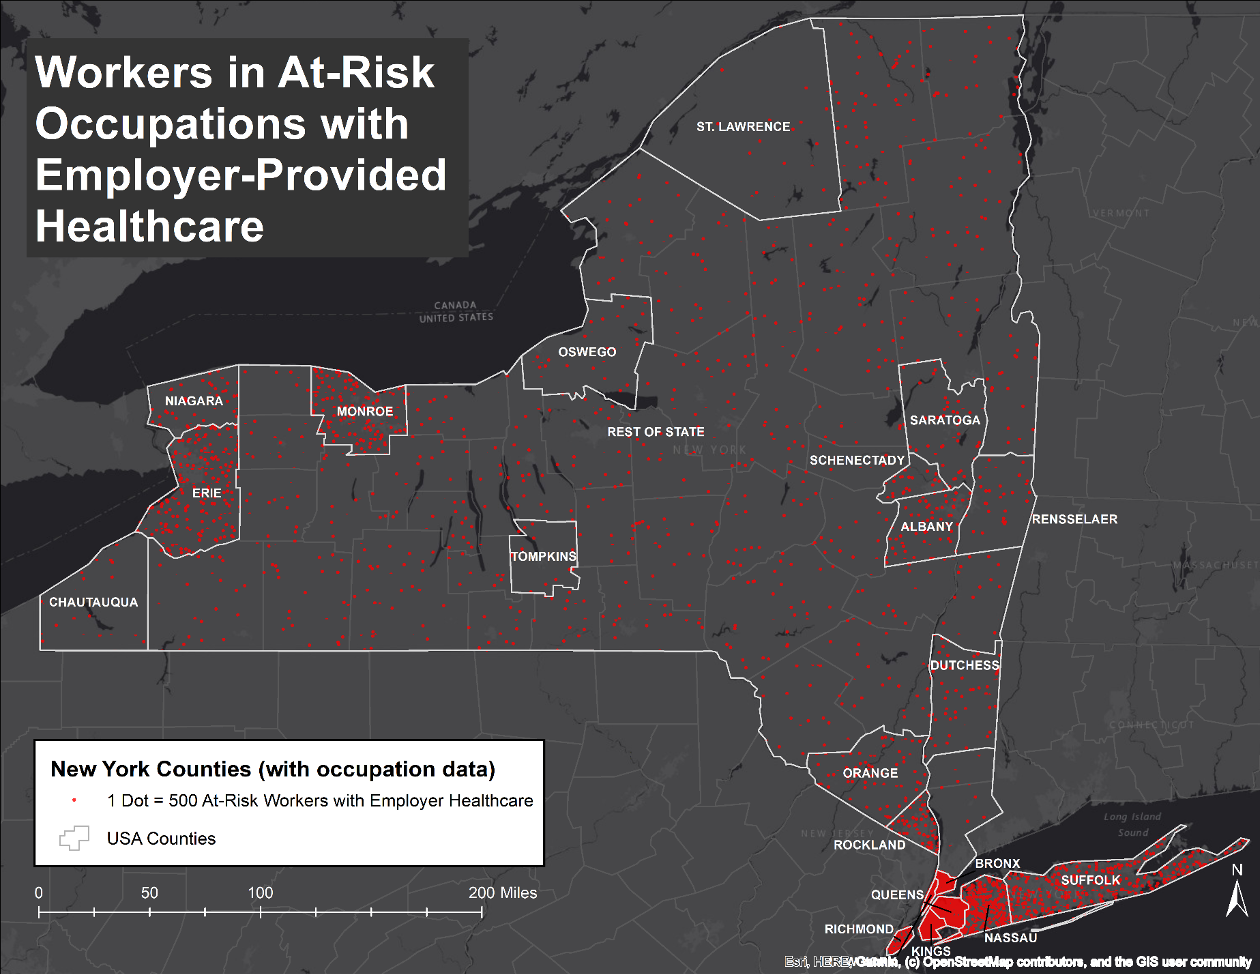 By far, ther are more workers in at risk occupations with employer-provided healthcare in the greater Manhattan area than in upstate locations